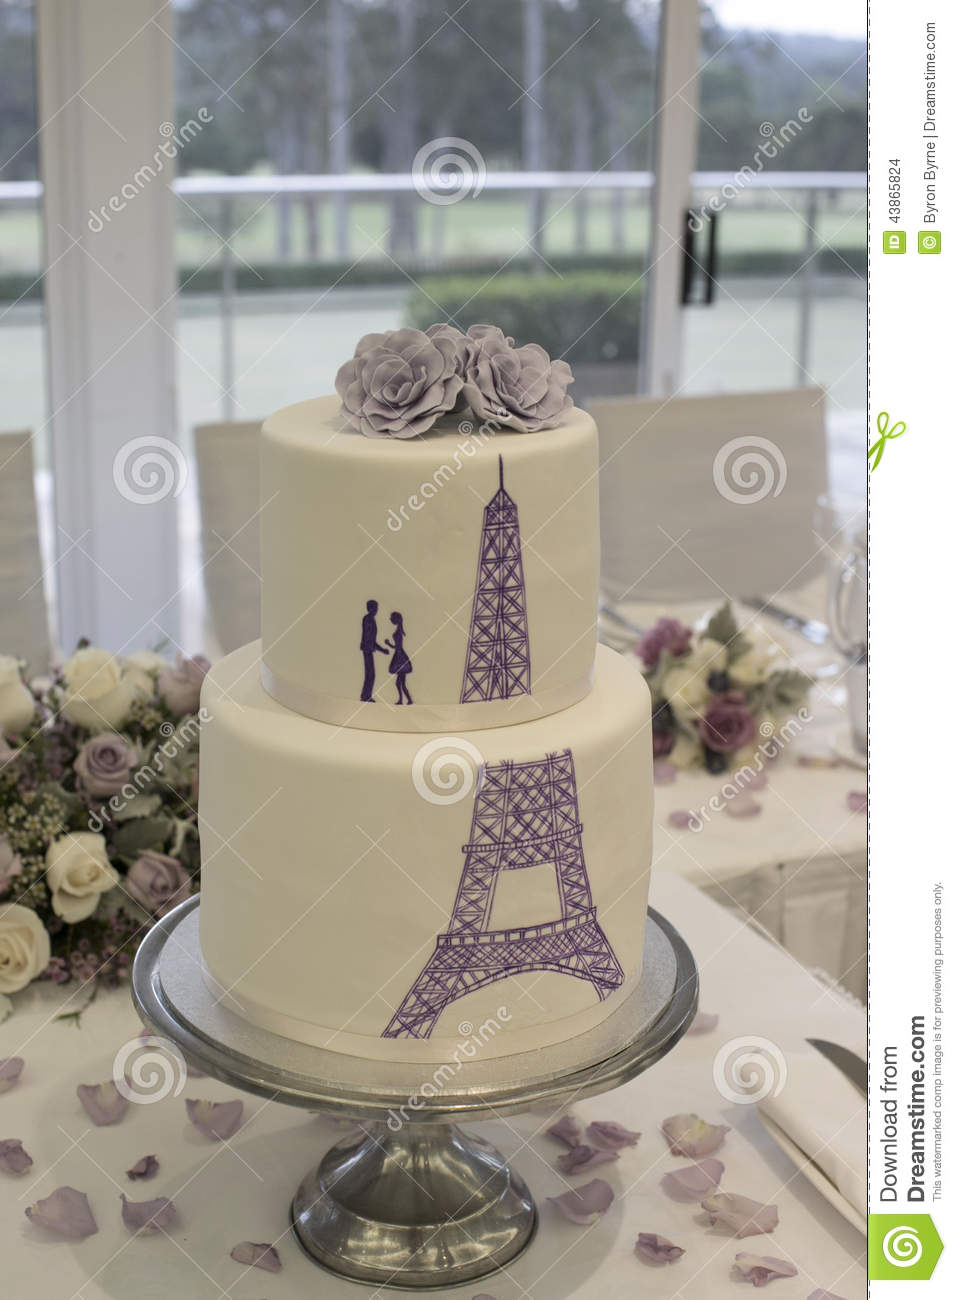 Cake Images With Chocolate Eiffel Tower Ontop